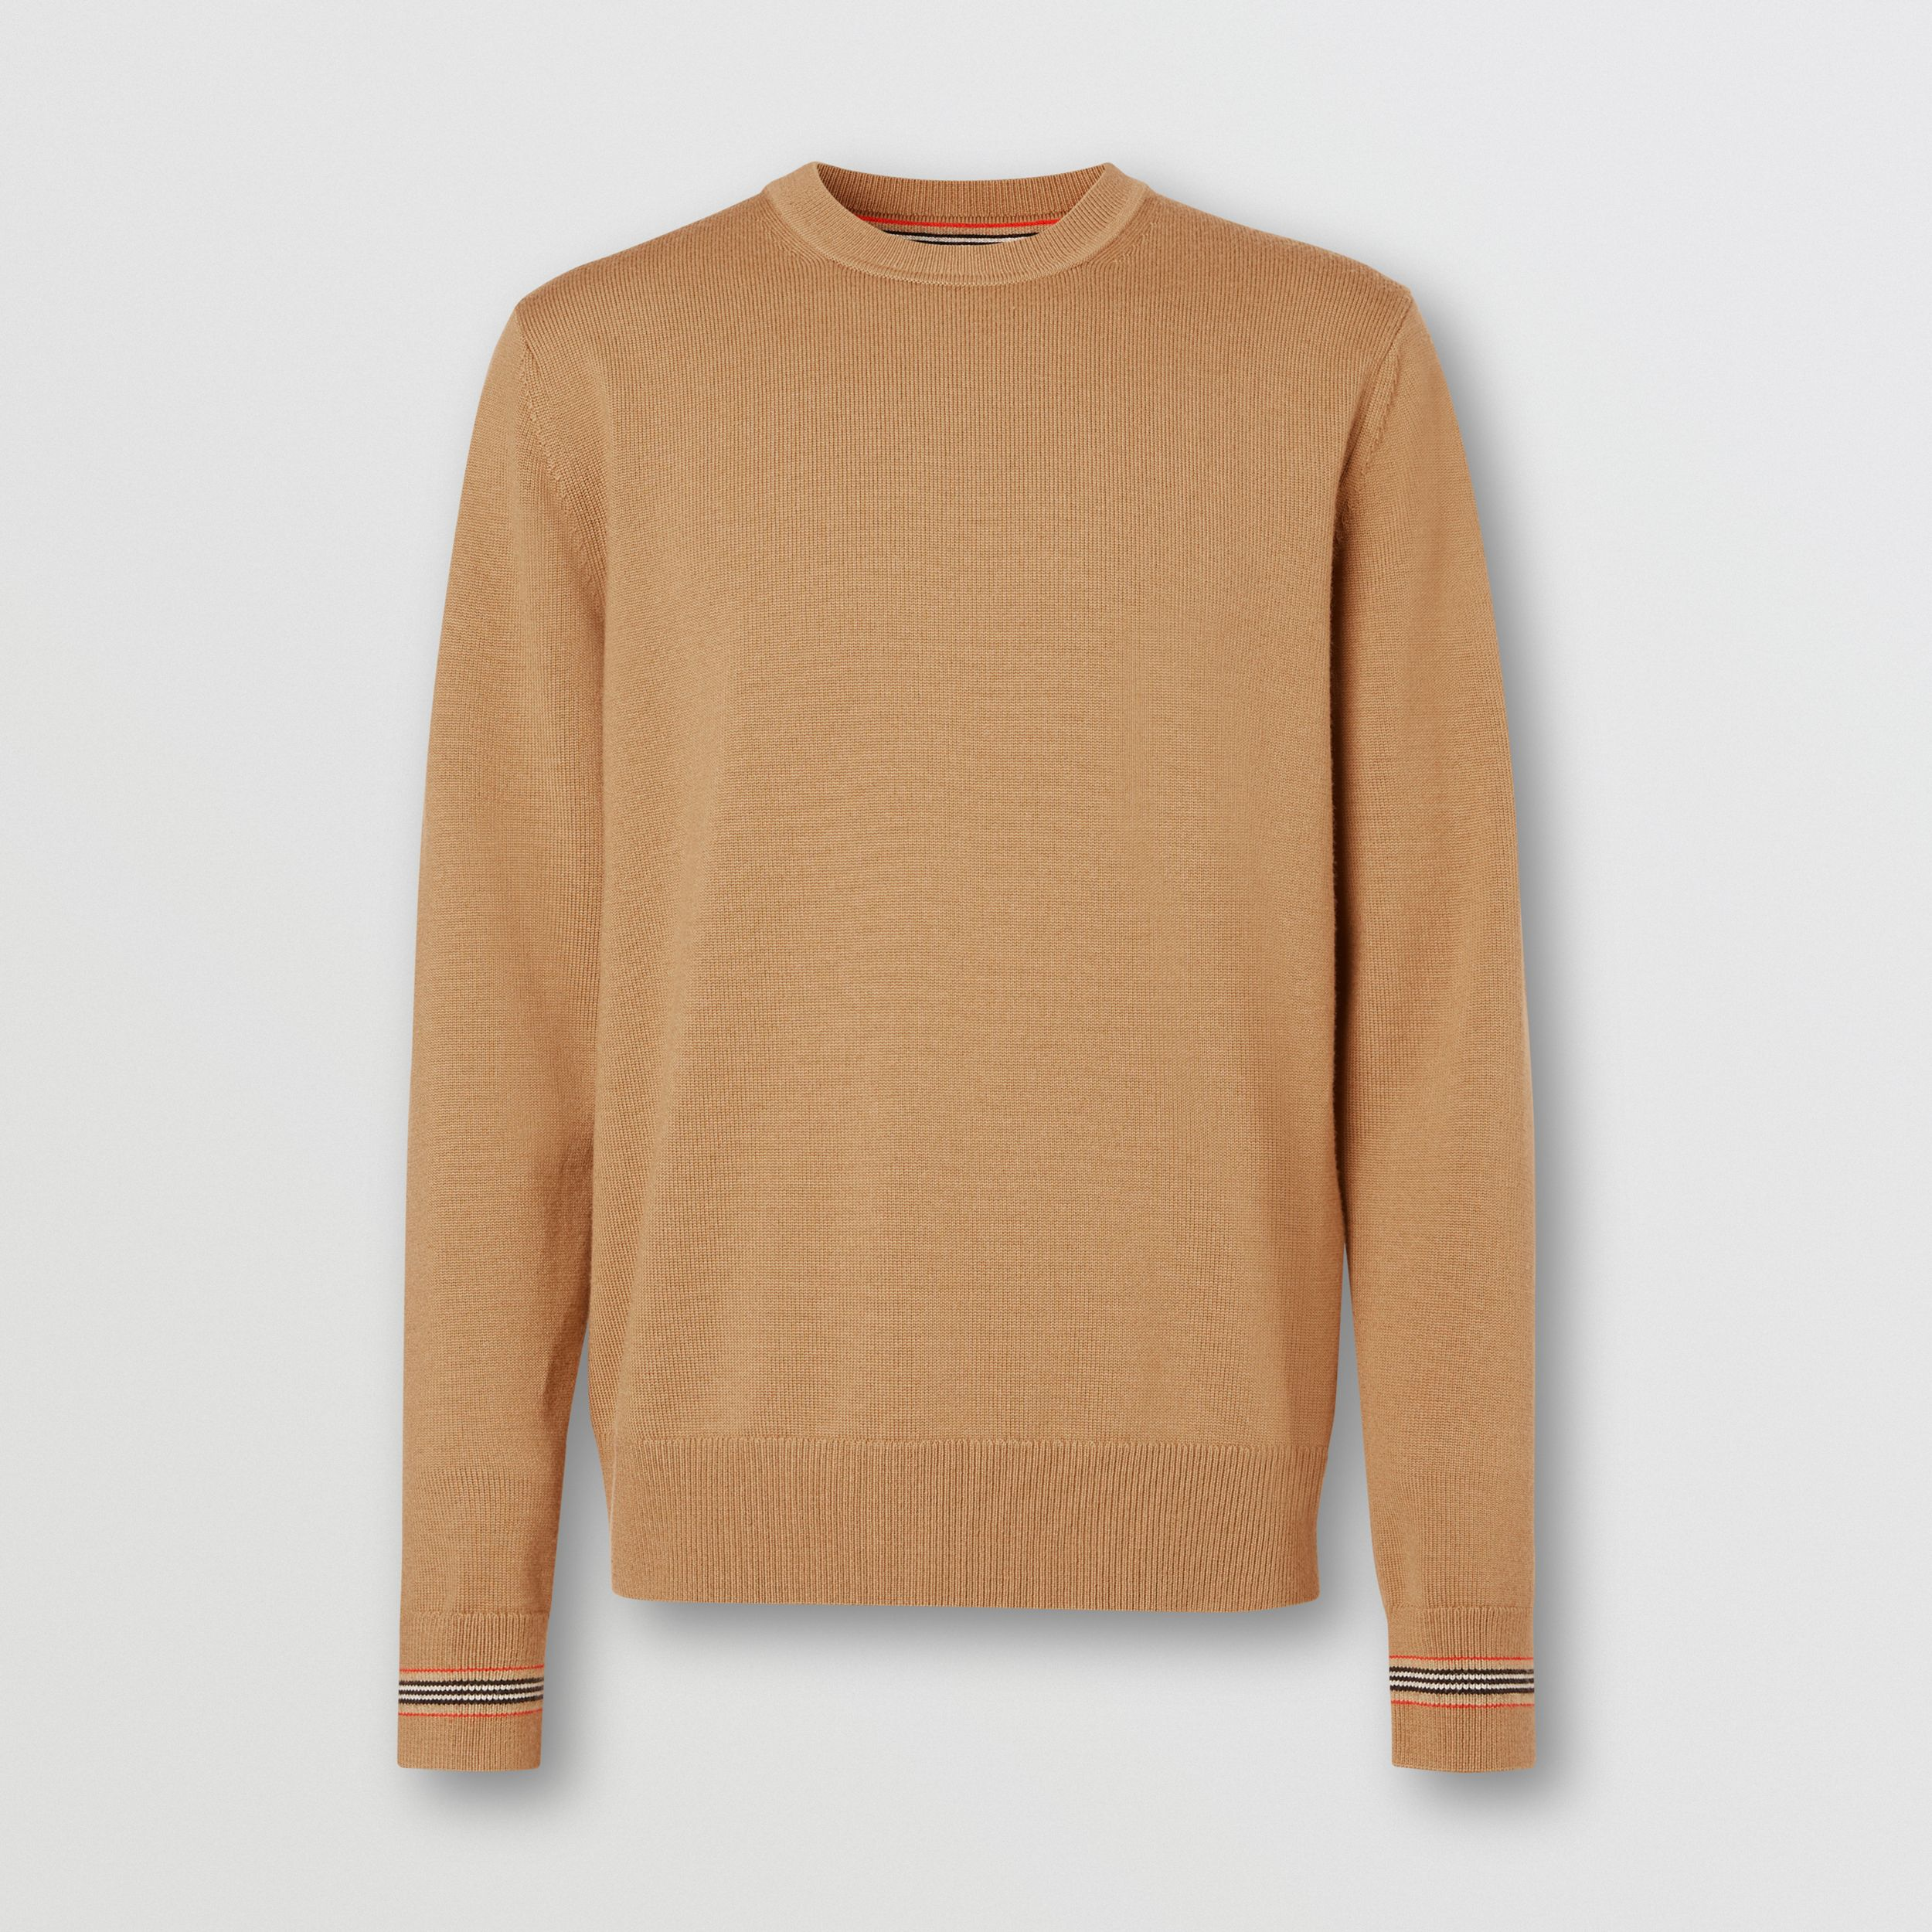 Icon Stripe Trim Merino Wool Sweater in Camel - Men | Burberry United Kingdom - 4